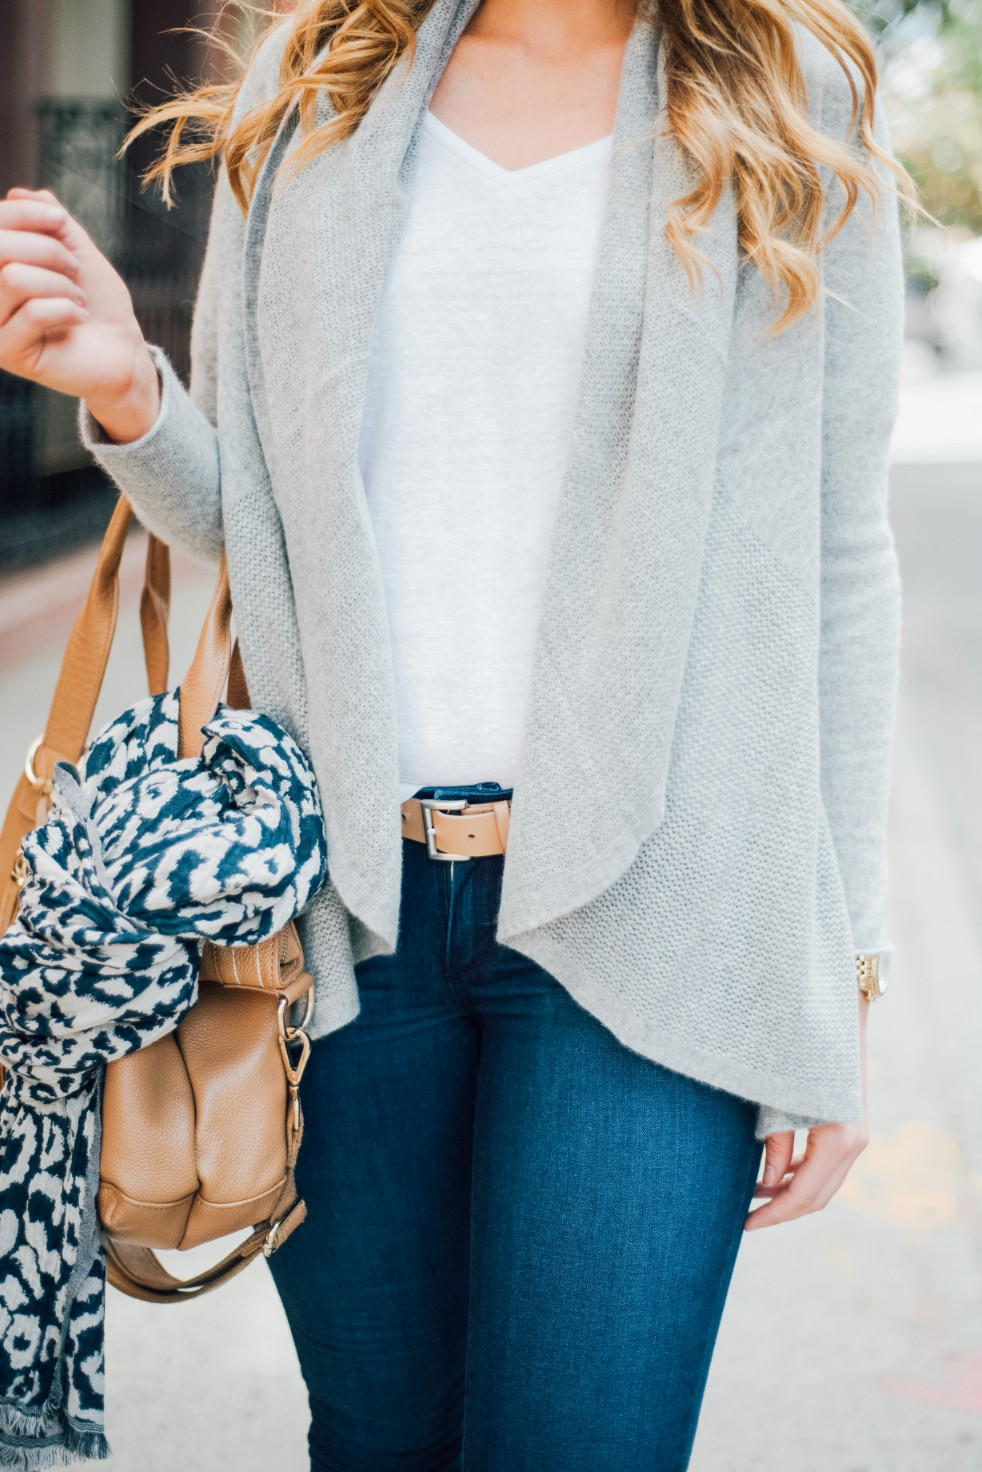 3 Wardrobe Basics Every Stylish Girl Needs grey cashmere sweater paige blue denim jeans white linen tee